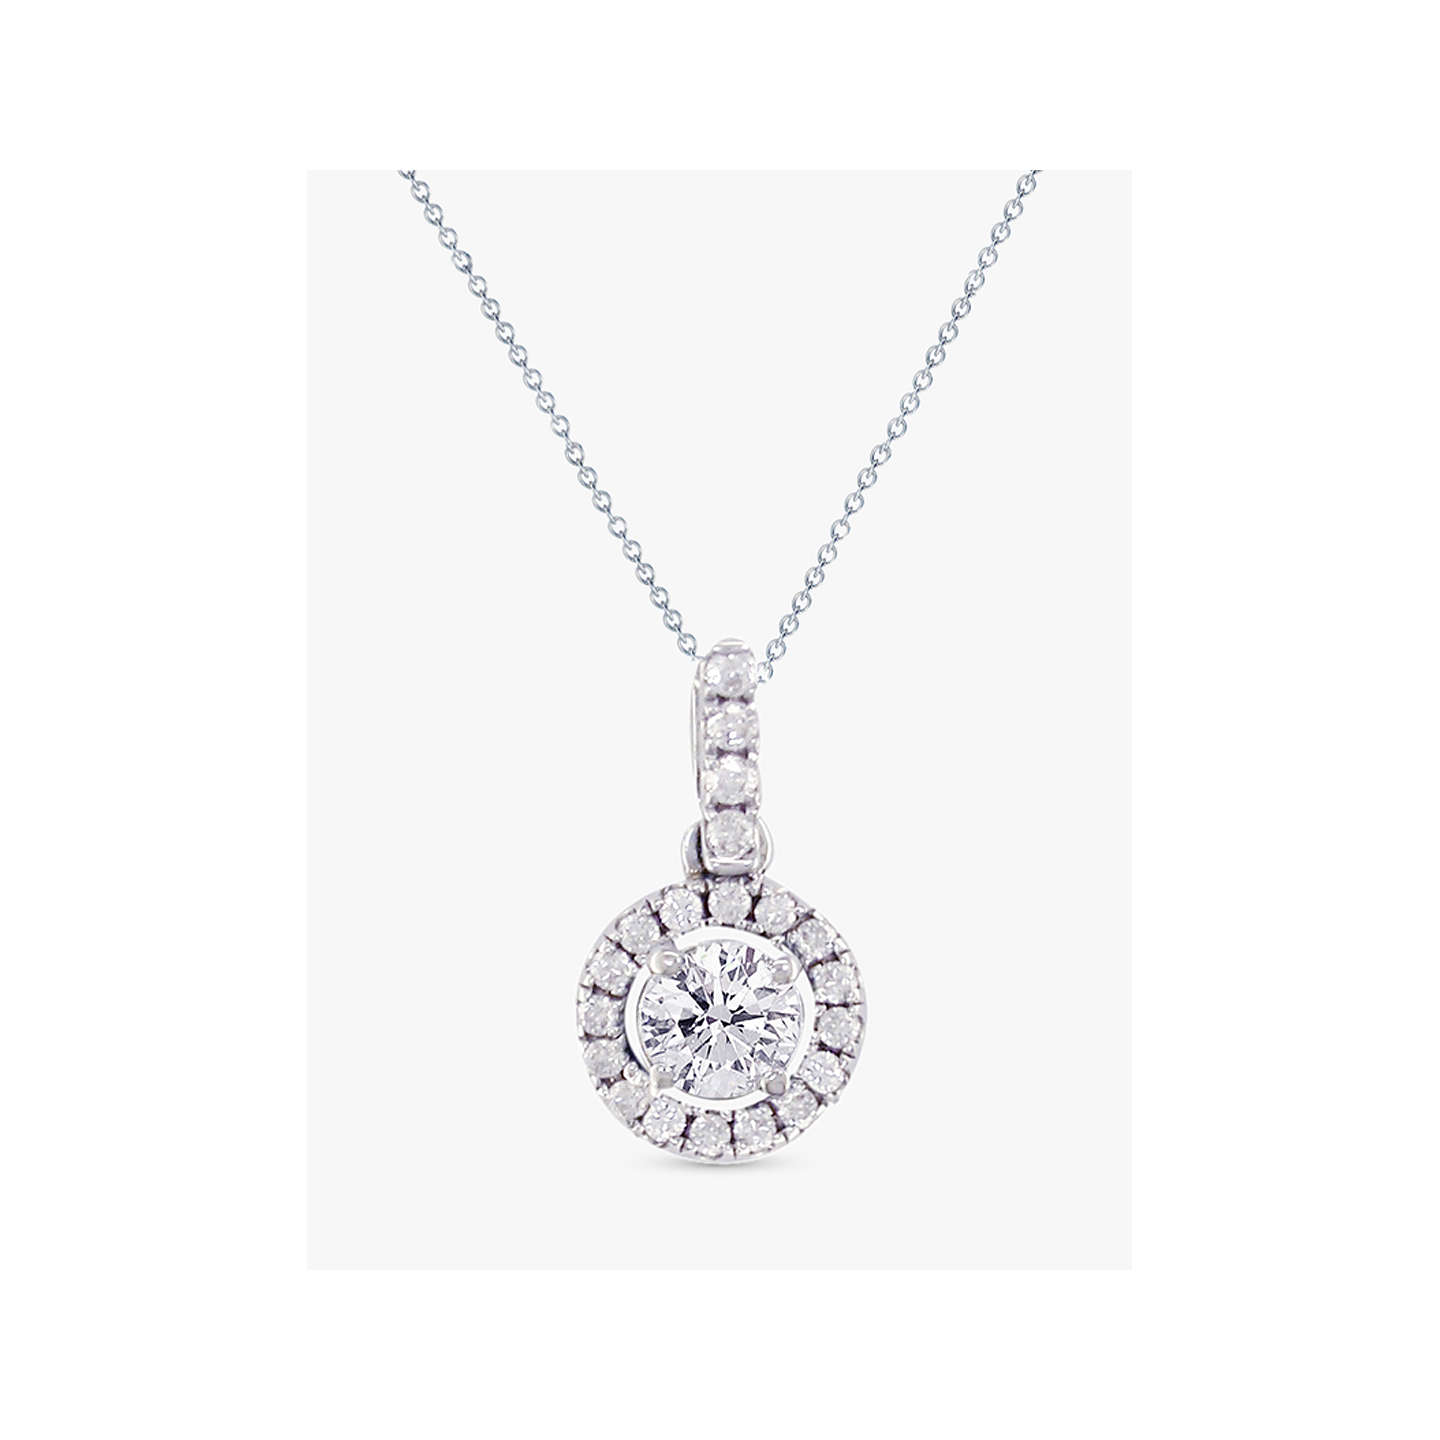 tennis jewelry products mock necklace white gold diamond in the chain whitegold gods